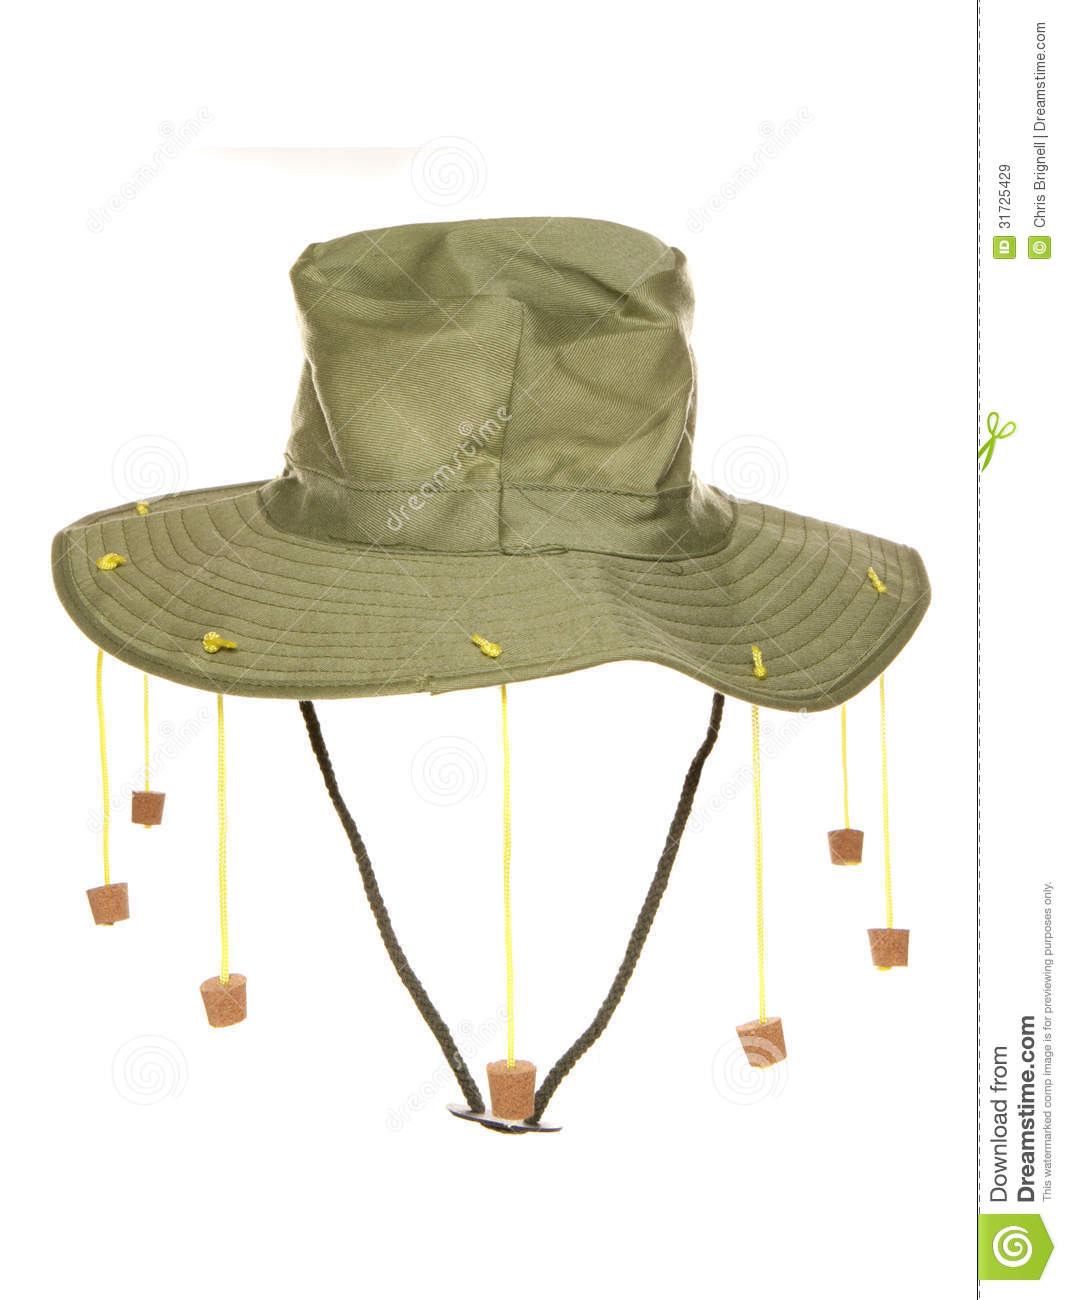 Australian Cork Hat Royalty Free Stock Images - Image: 31725429